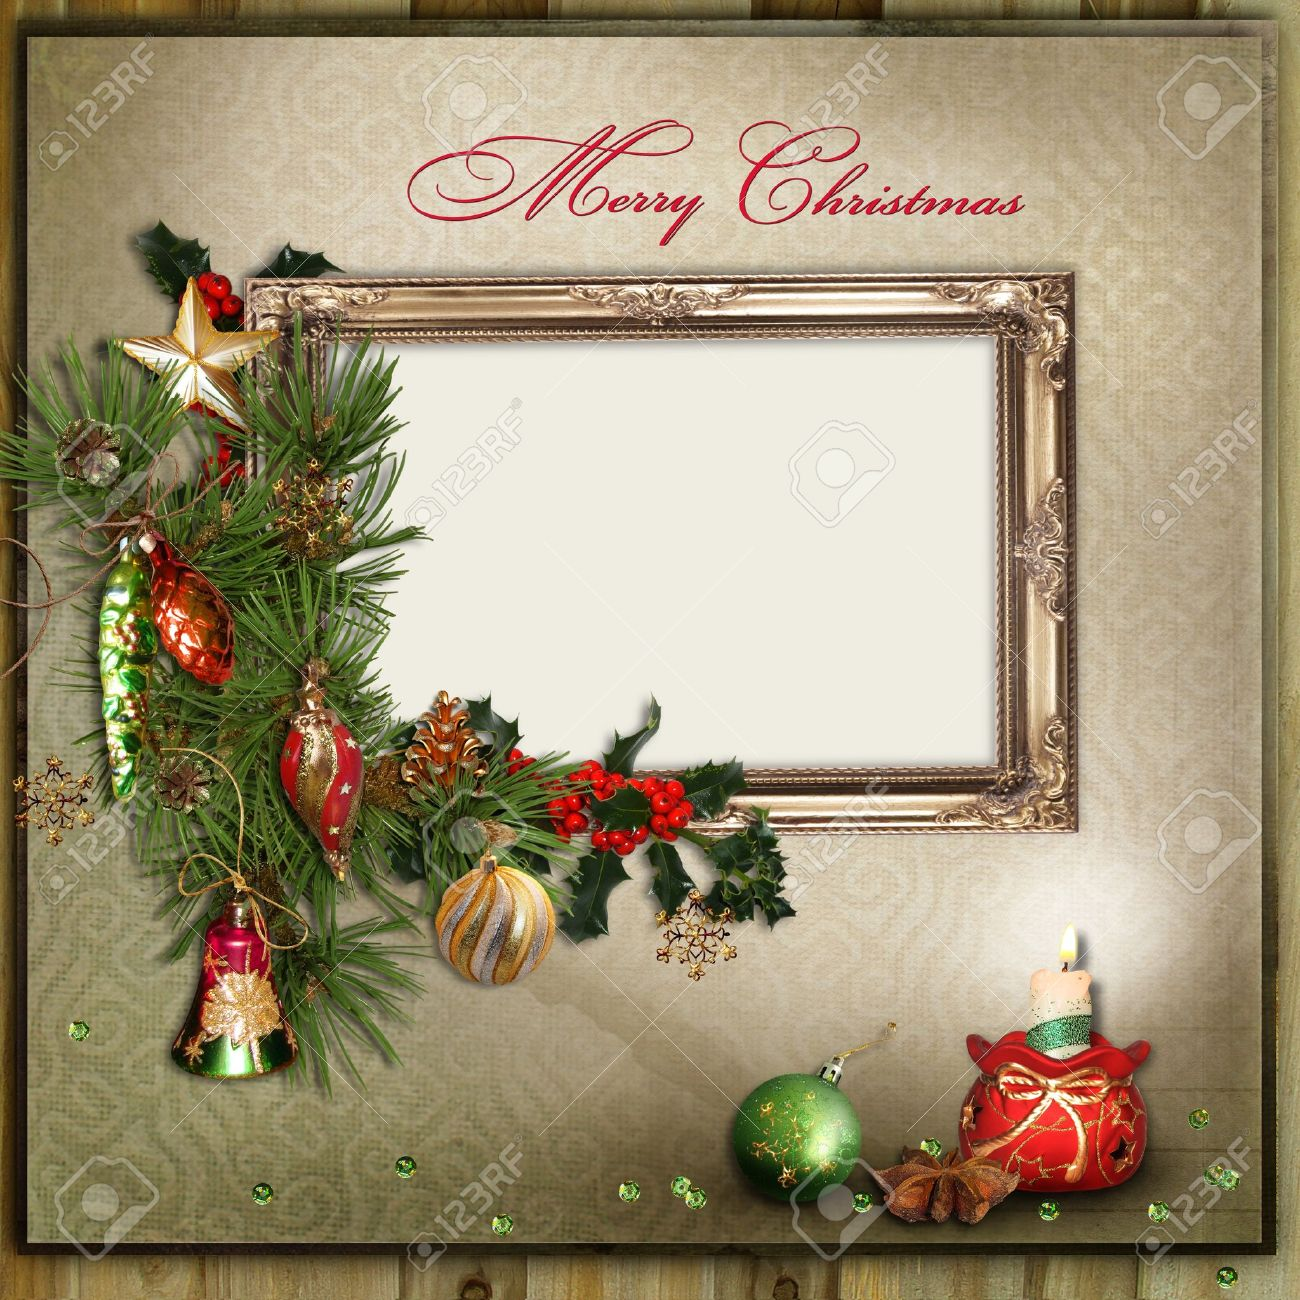 Christmas greeting card with frame for a family stock photo christmas greeting card with frame for a family stock photo 16133048 kristyandbryce Image collections